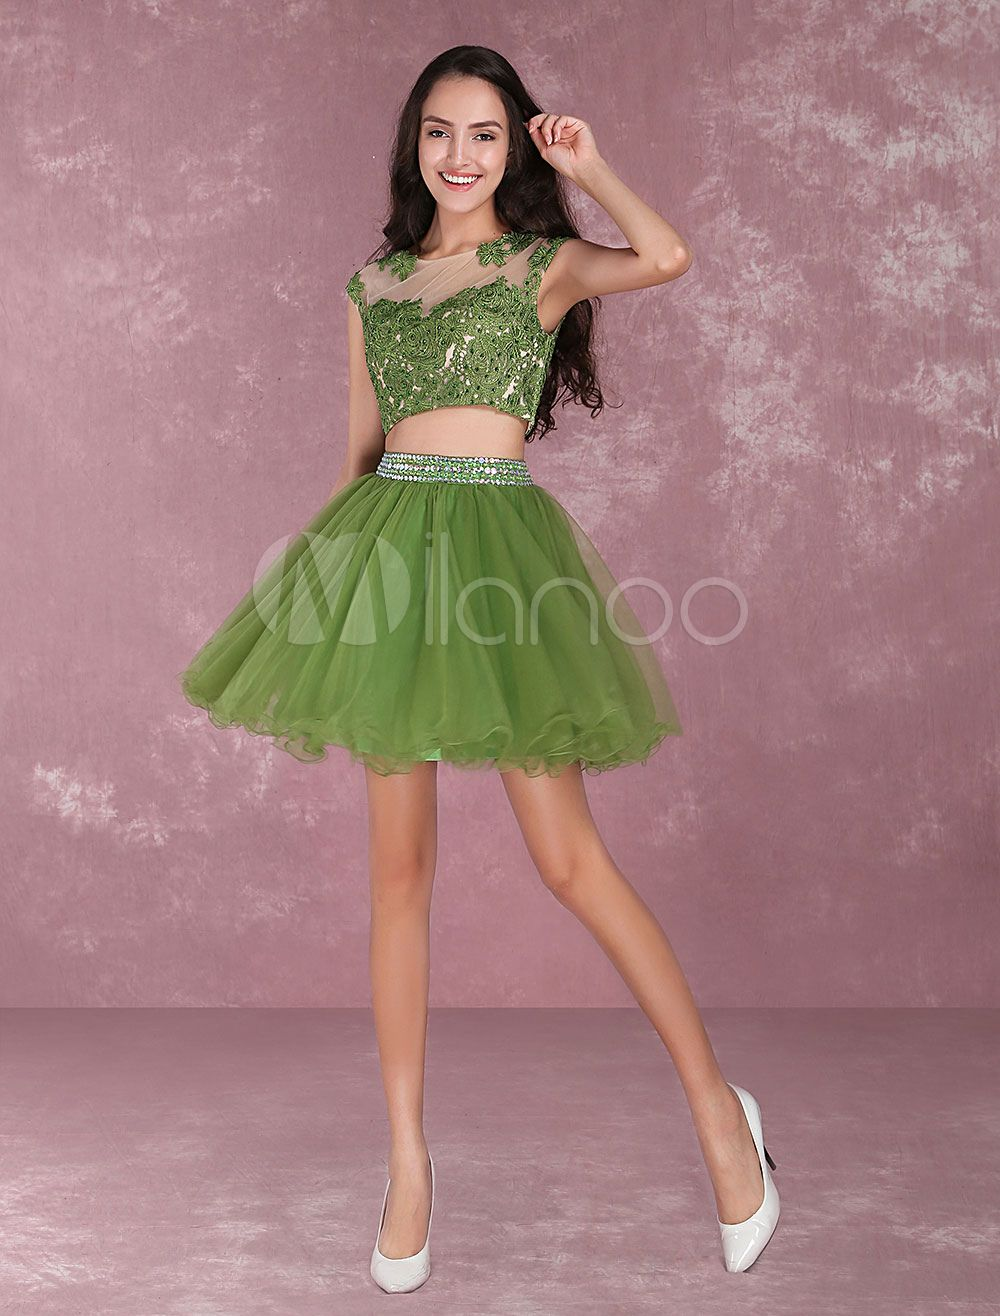 Tulle prom dresses lace applique beading homecoming dresses piece